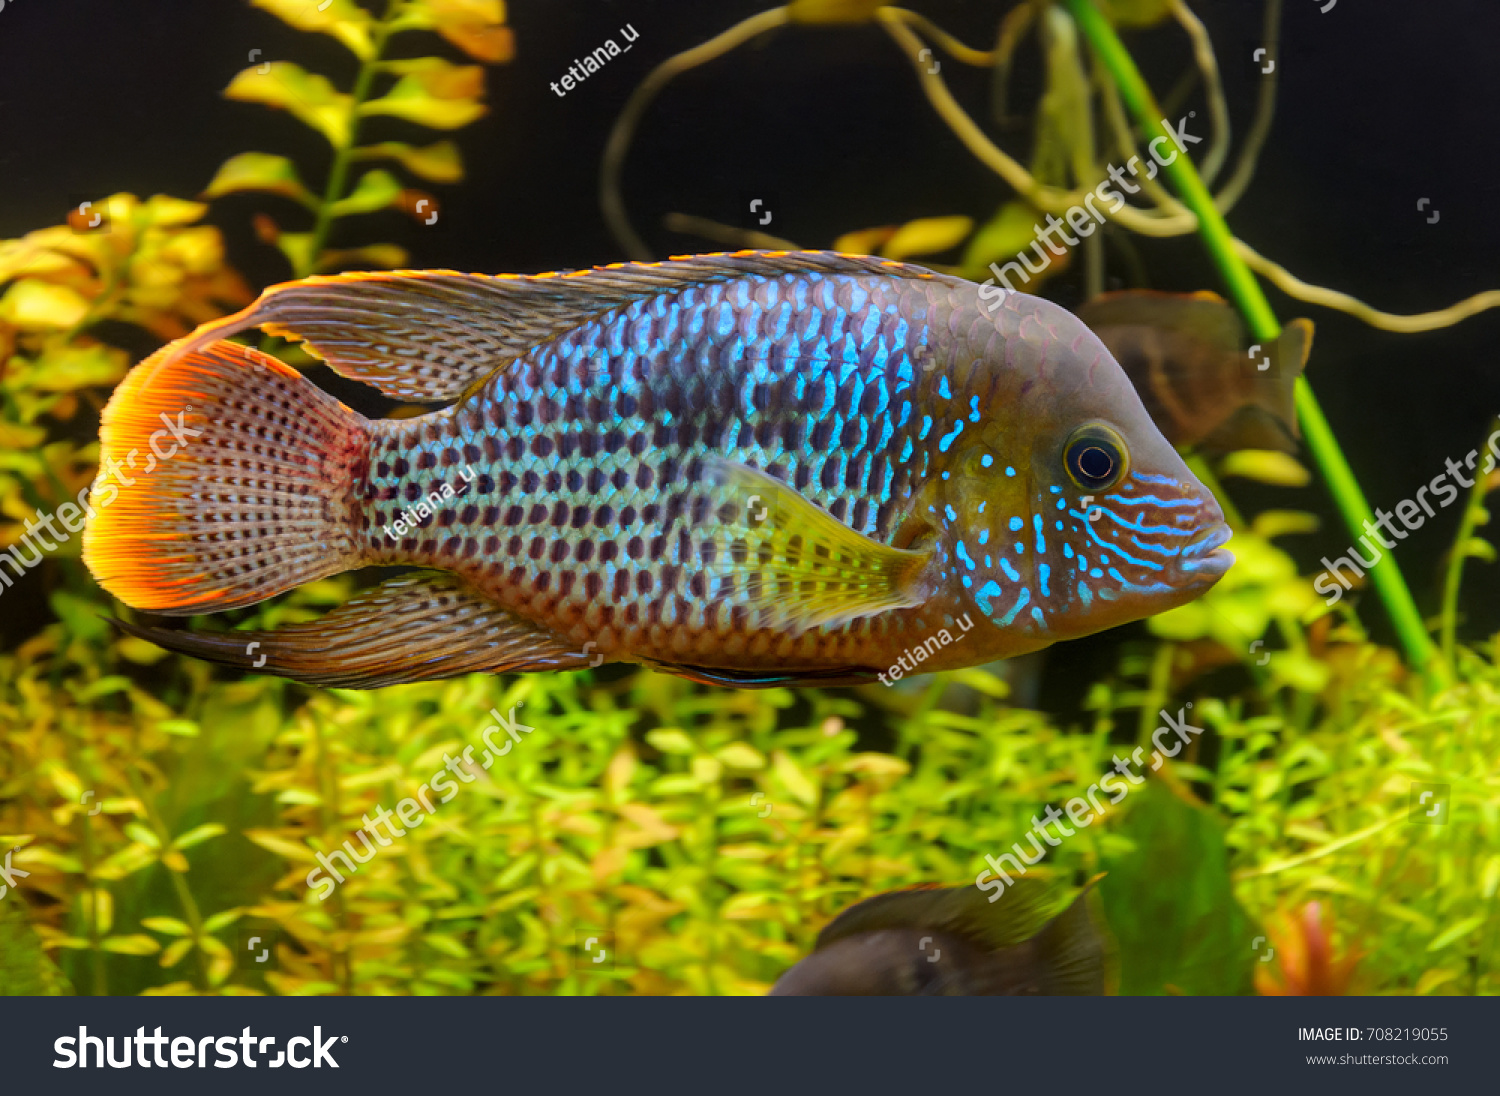 Green Terror Andinoacara Rivulatus Colorful Fish Stock Photo & Image ...